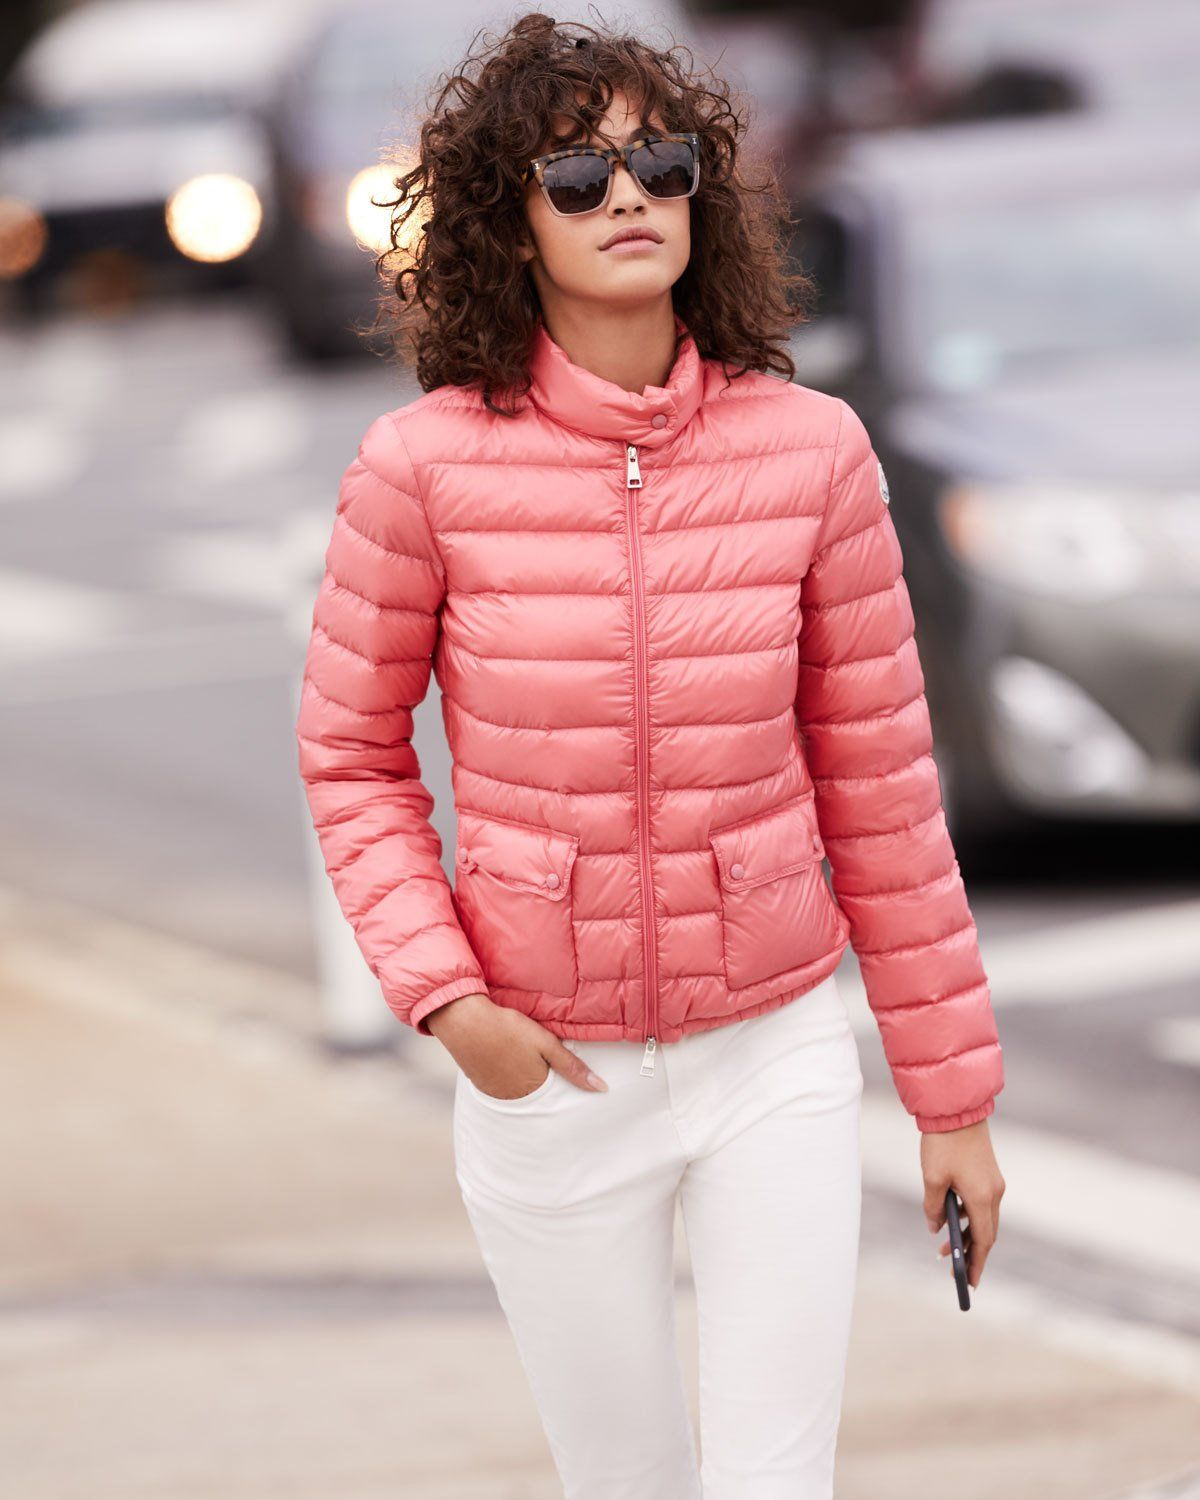 Moncler Lans Collared Down Jacket In 2020 Jackets Down Jacket Puffer Jackets